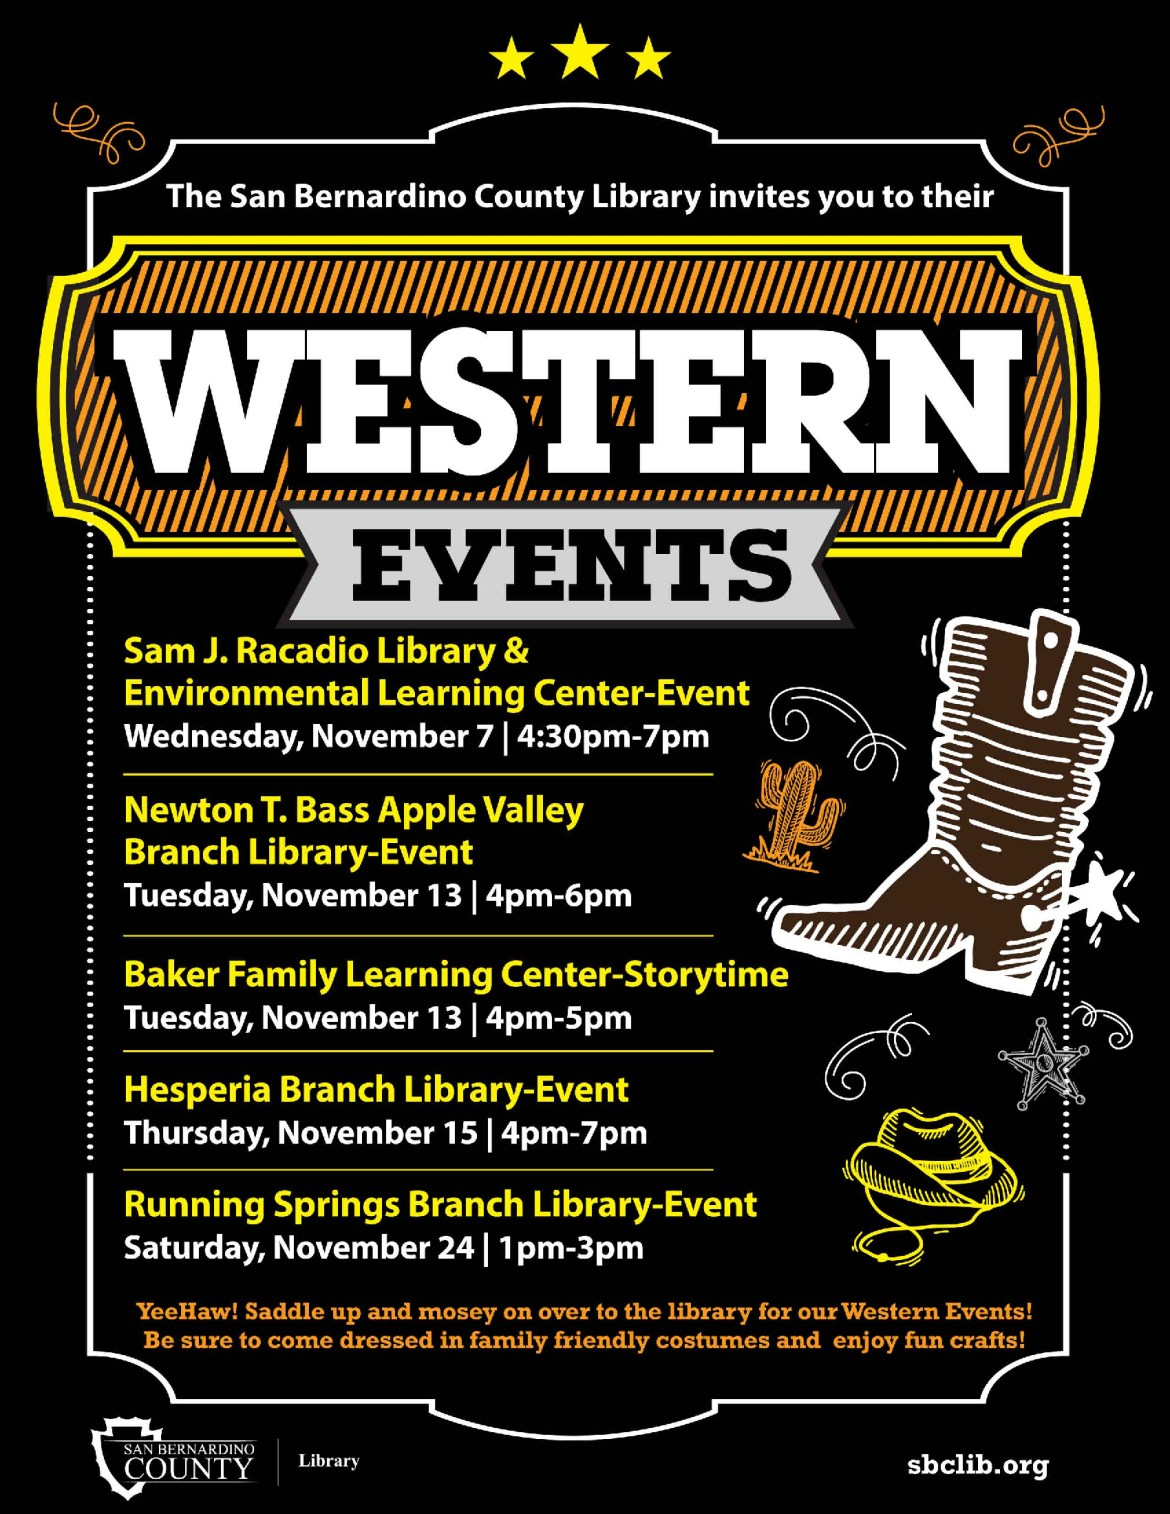 SBCL FB Western Events OCT18